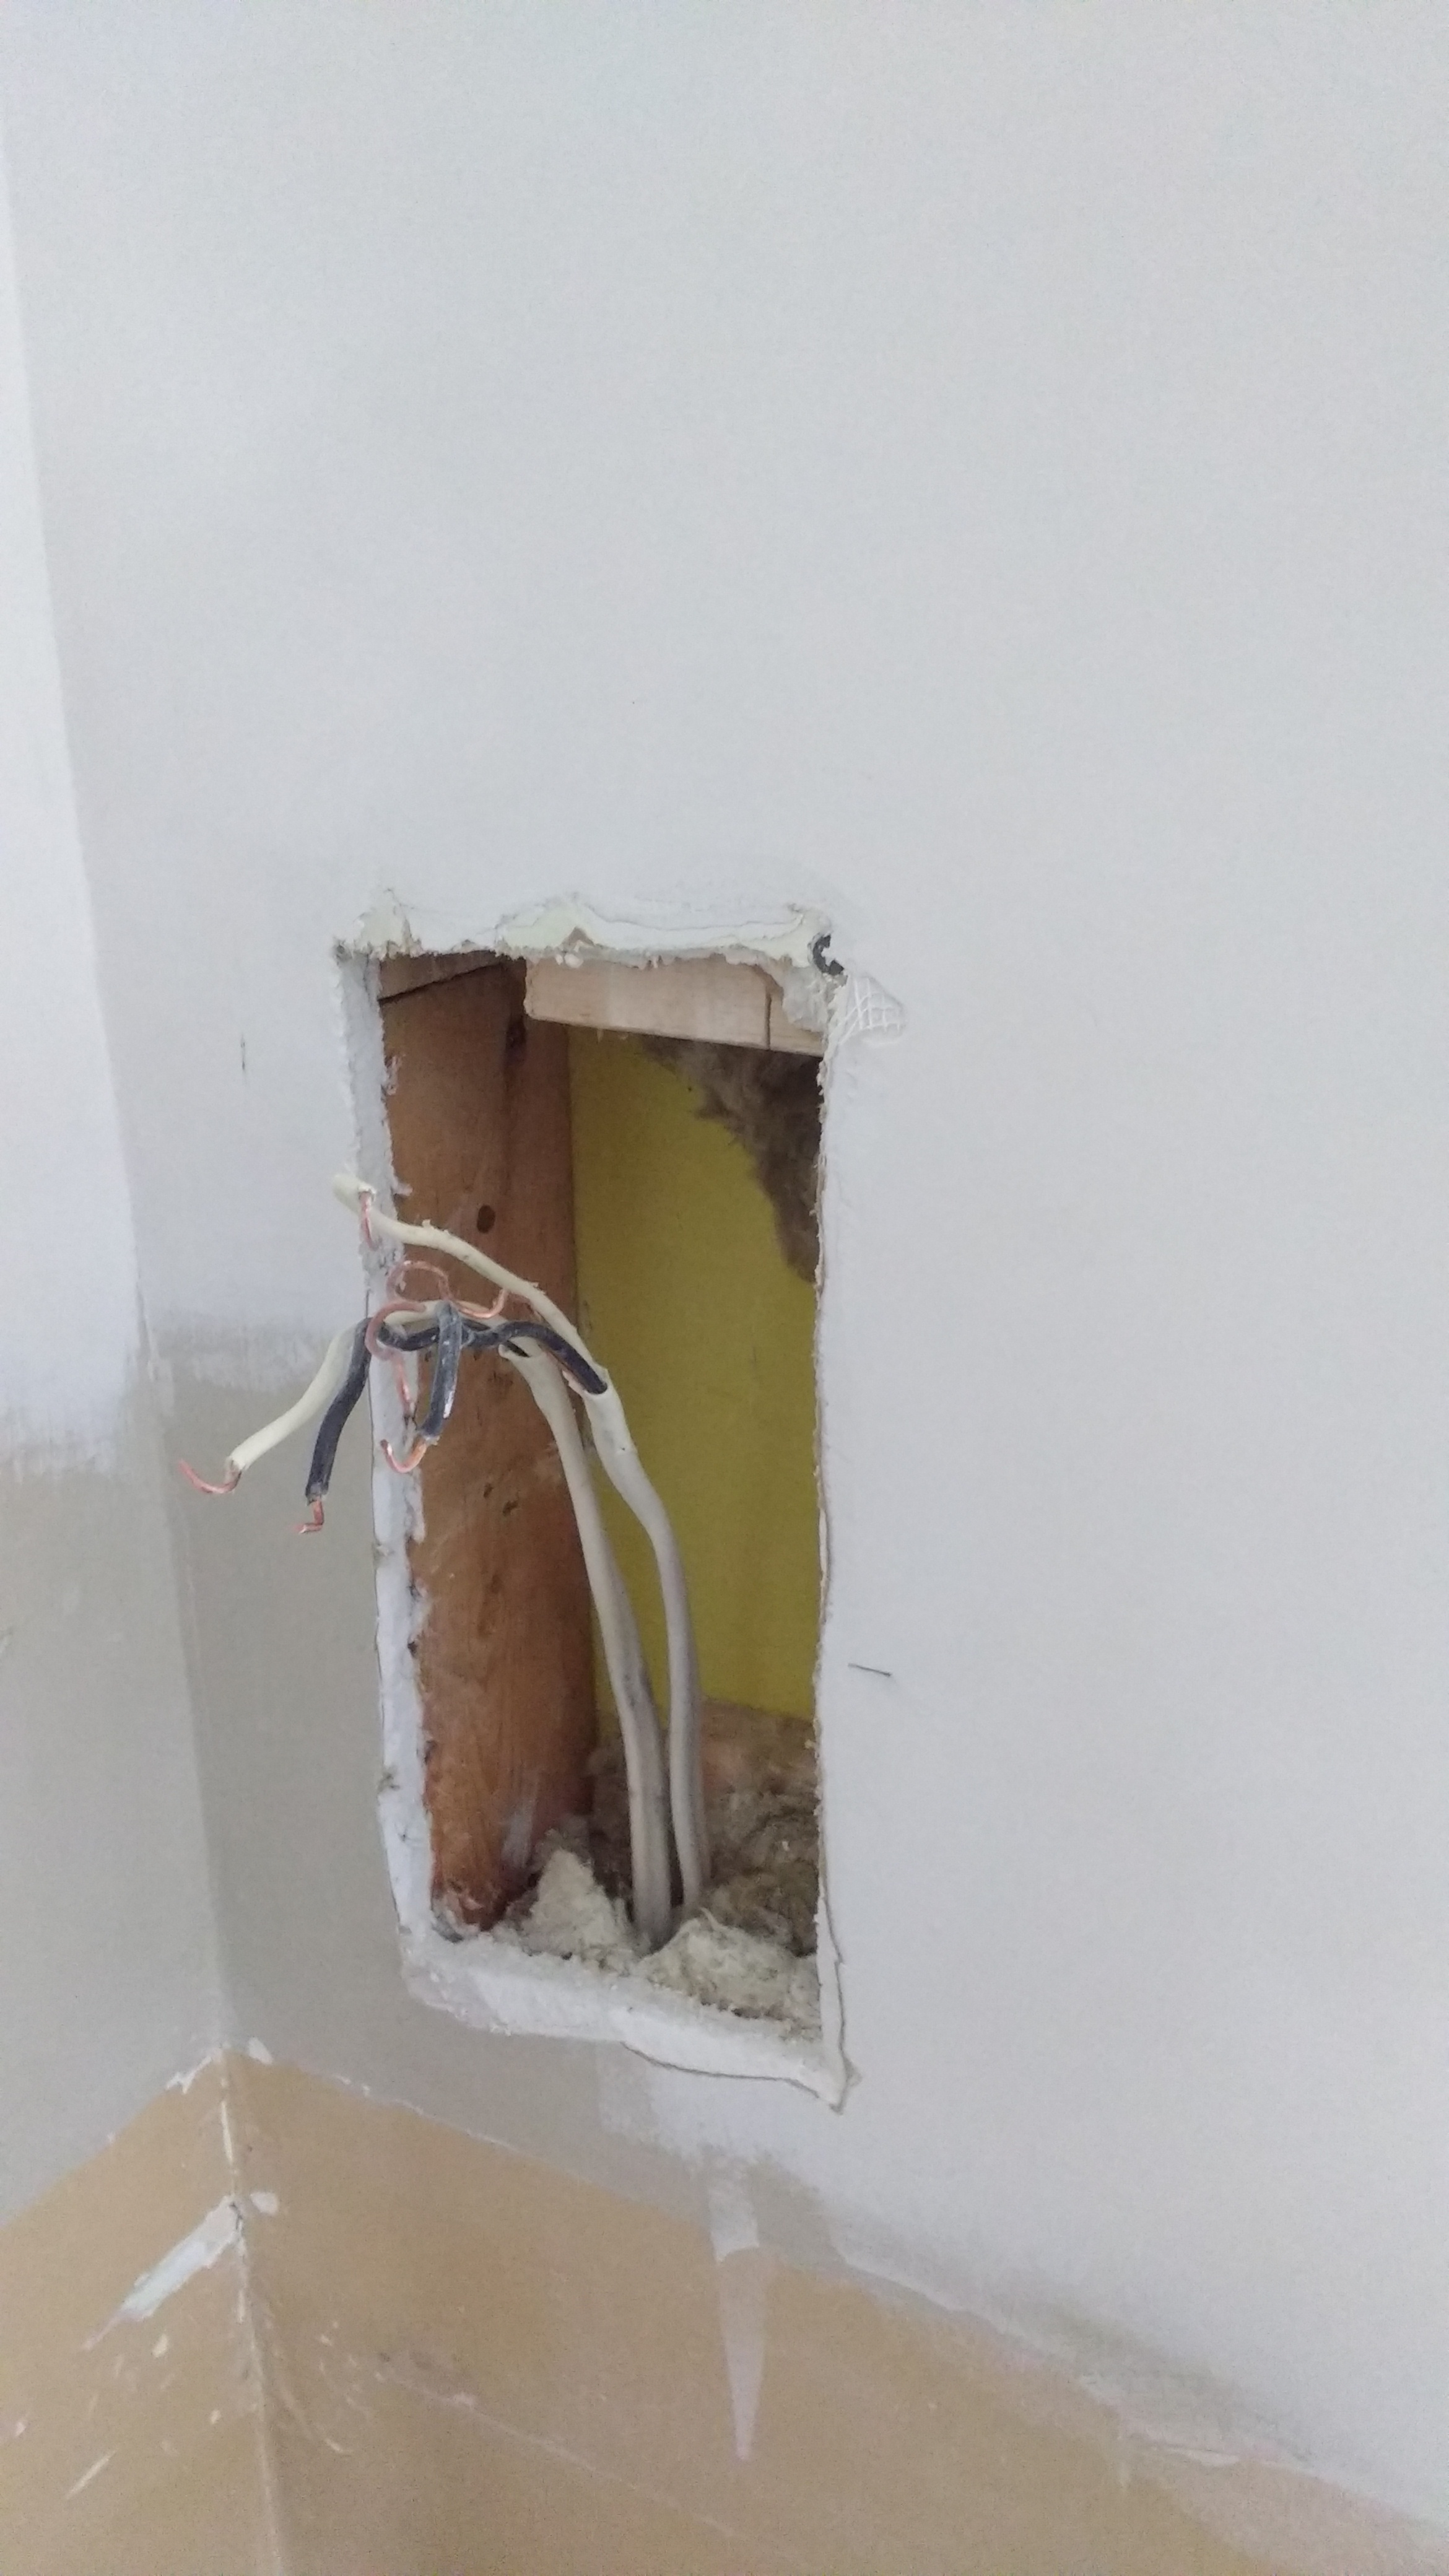 Bathroom Electrical Outlet Peeter Joot S Blog Moving An Electrical Outlet 4 Up In The